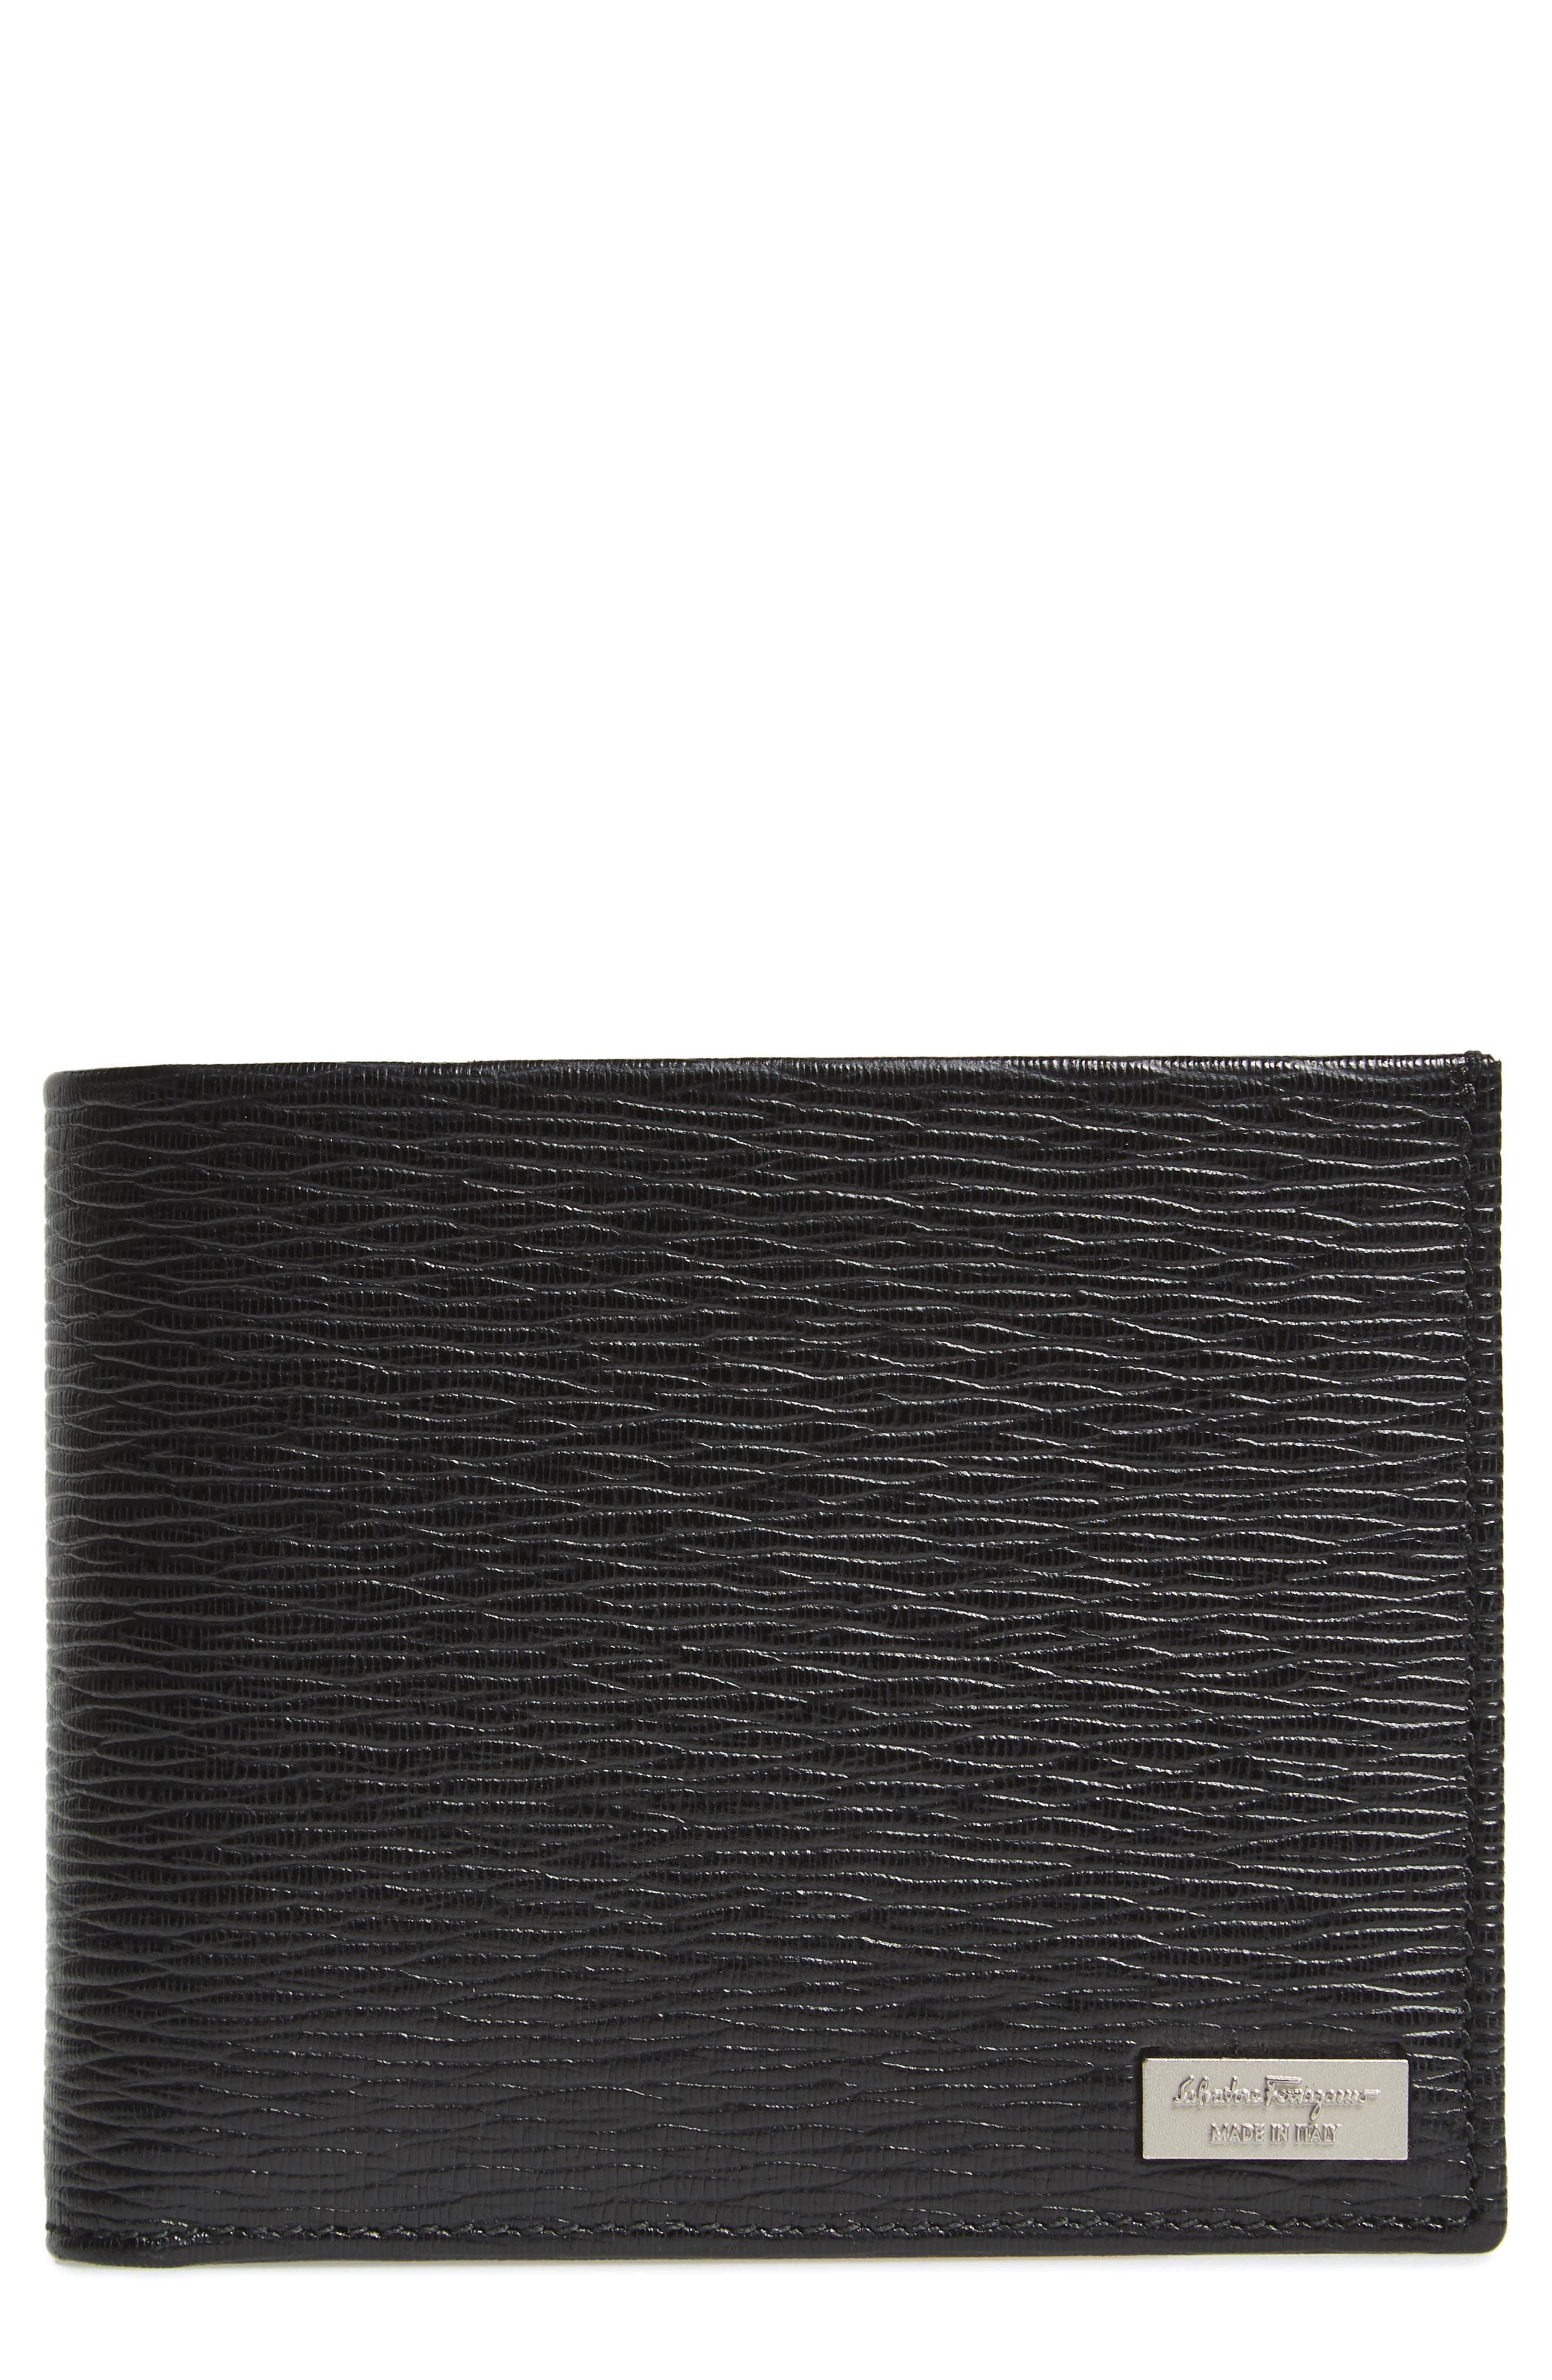 Revival Leather Wallet,                         Main,                         color, Black/ Red